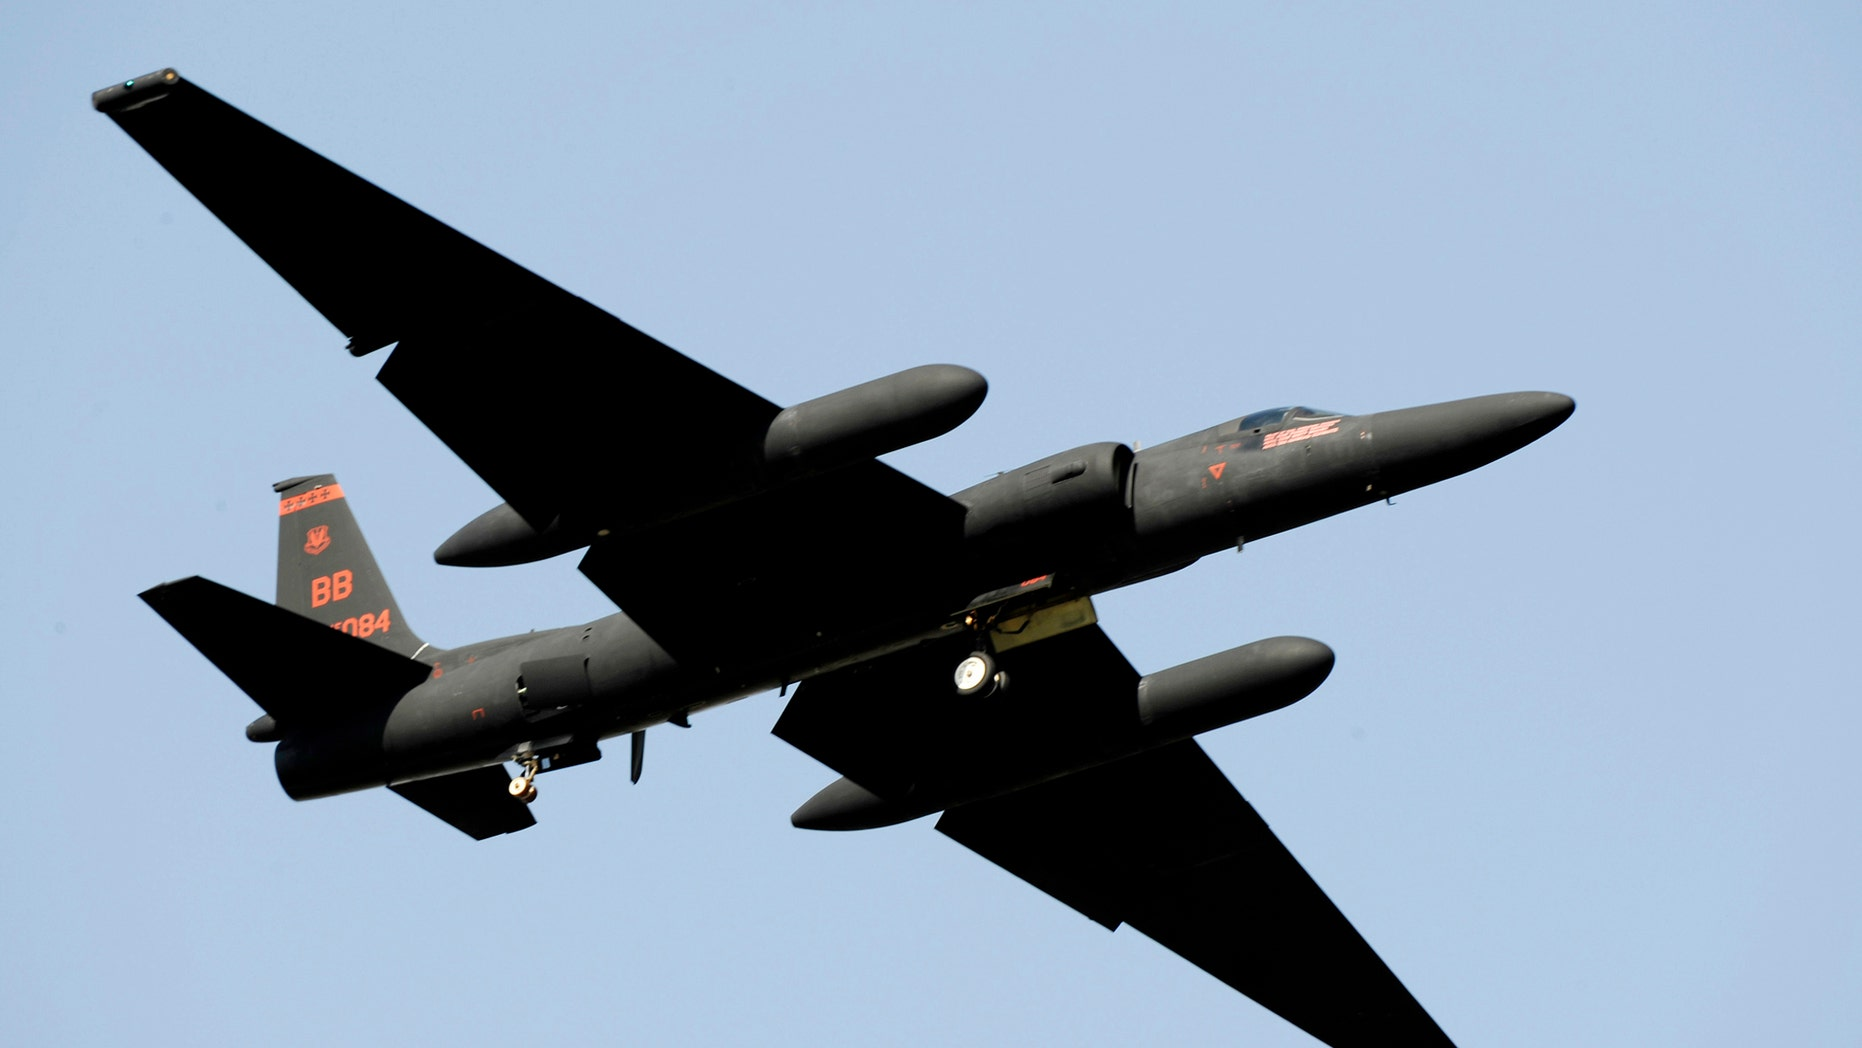 A U-2 'Dragon Lady' aircraft takes off from Osan Air Base, South Korea in this U.S. Air Force handout photo taken on October 21, 2009.